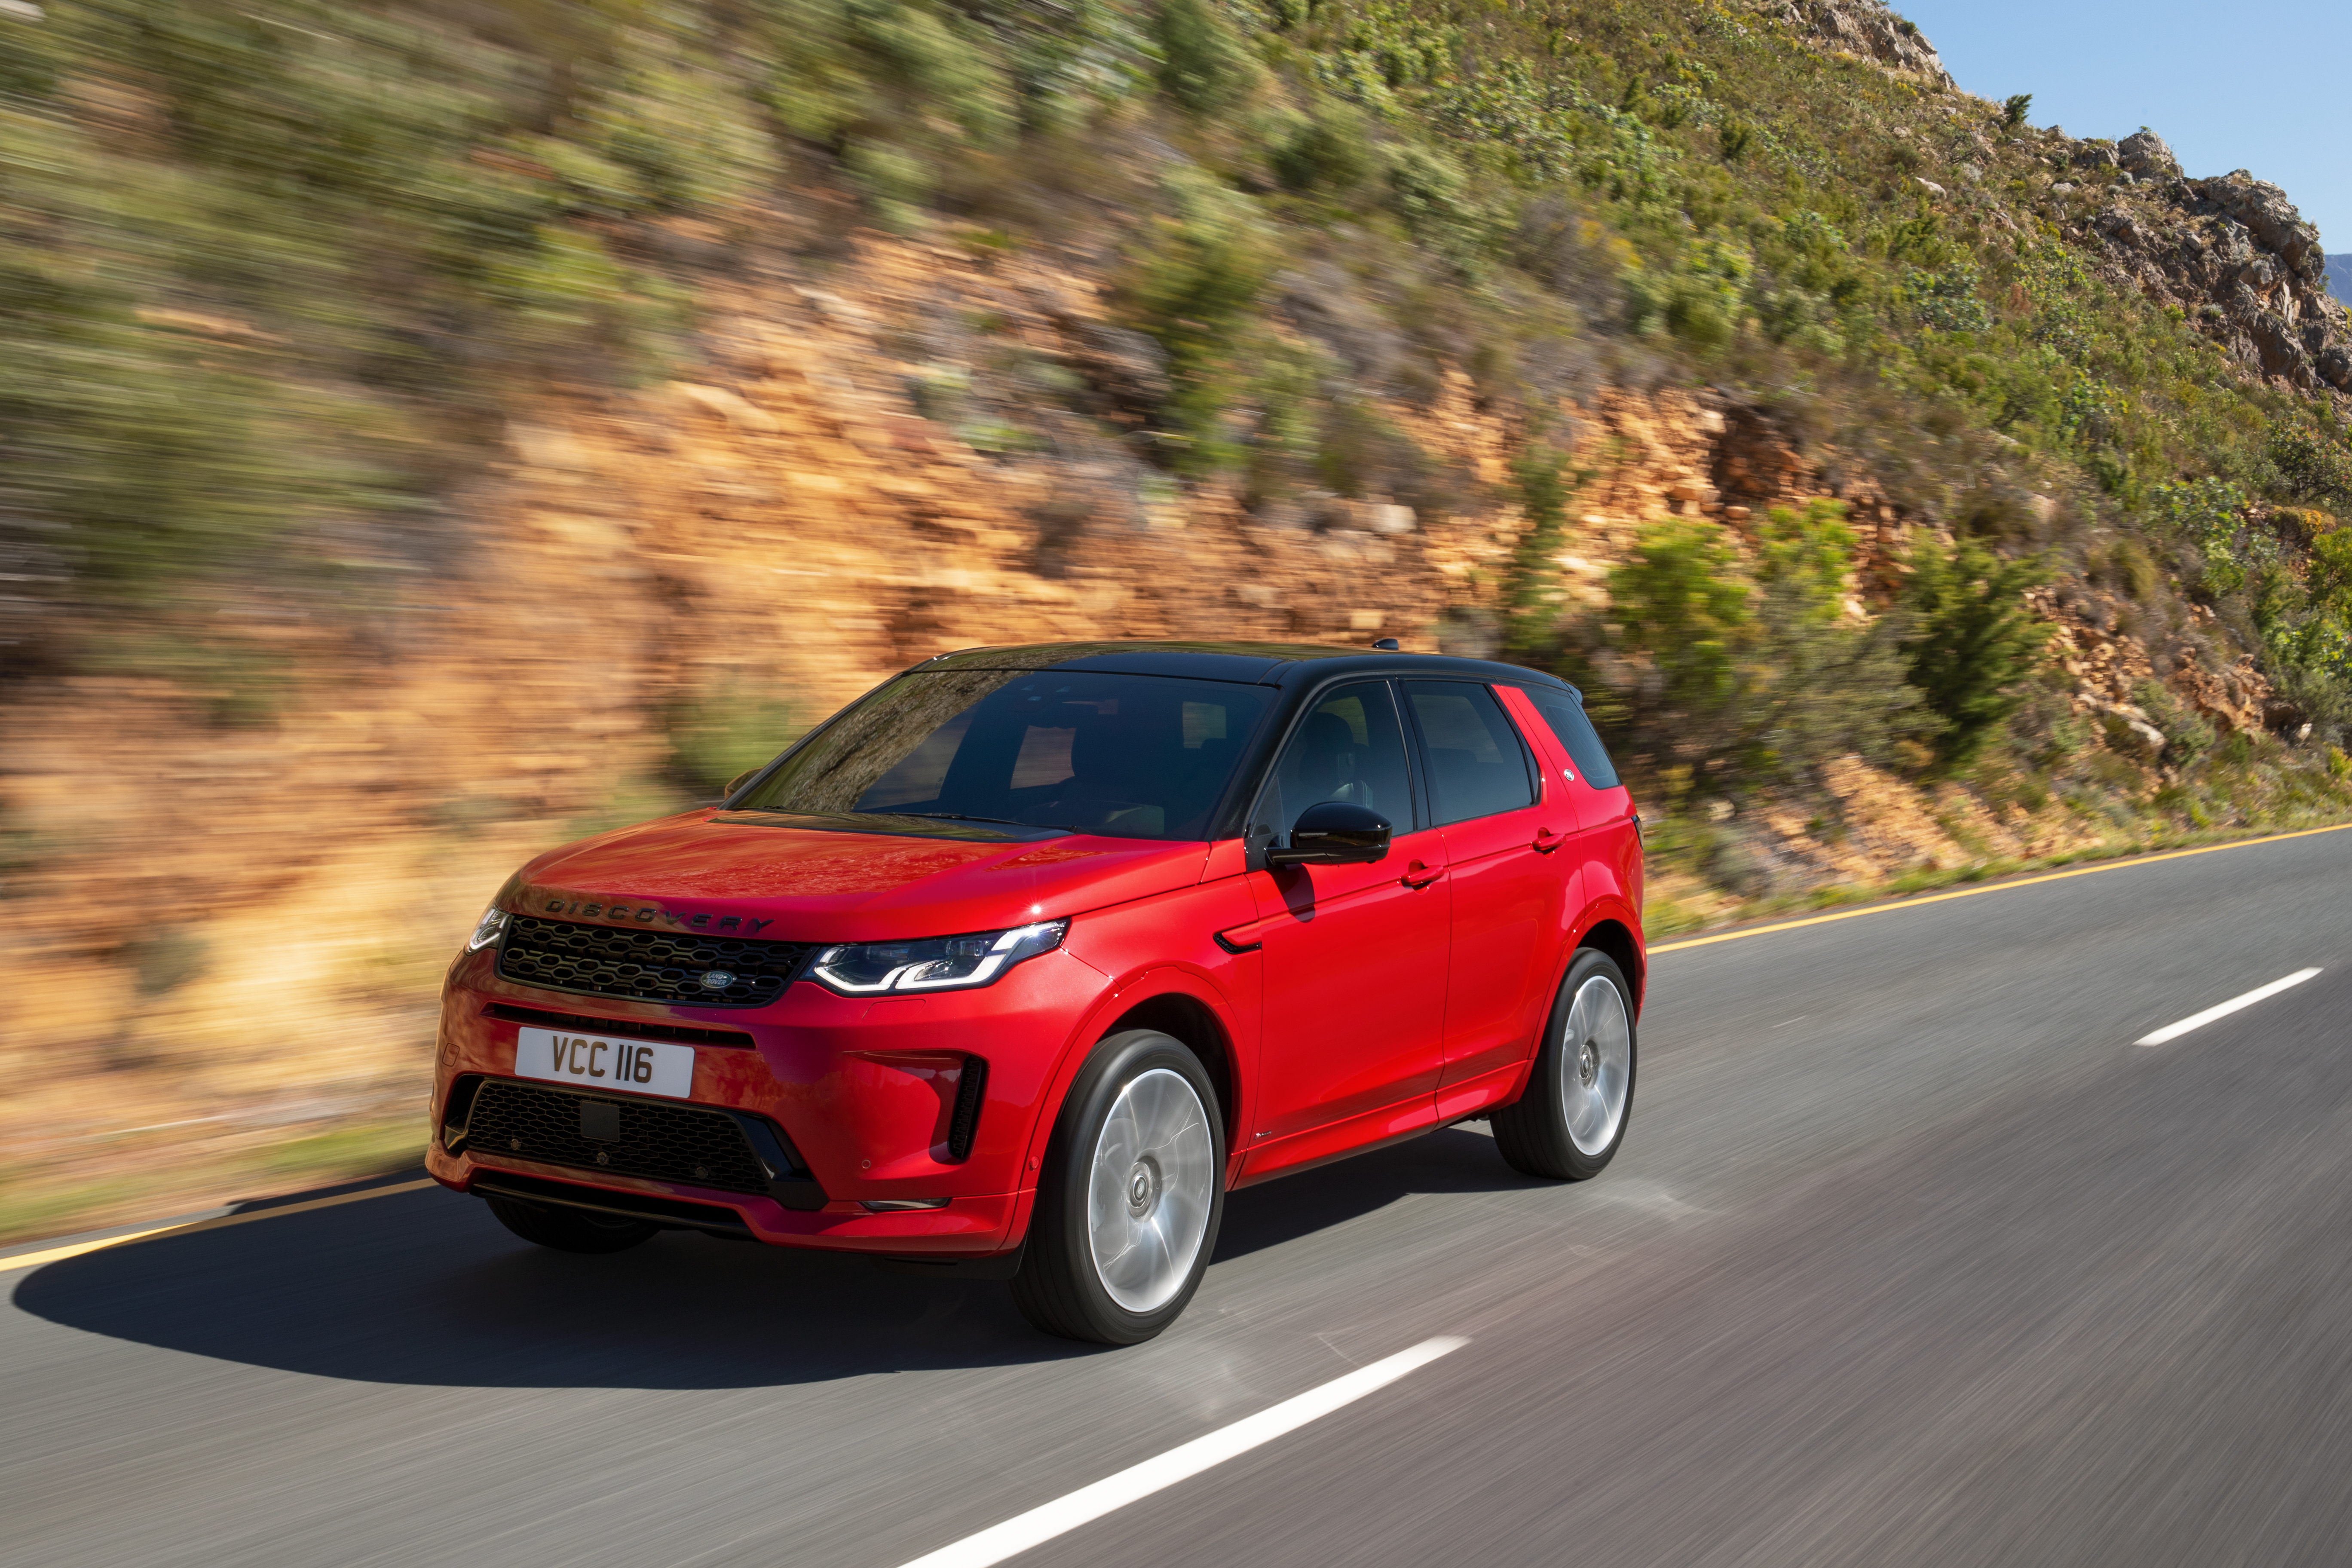 2020 Land Rover Discovery Is Built On The New Architecture >> Land Rover Unveils 2020 Discovery Sport With Mild Hybrid